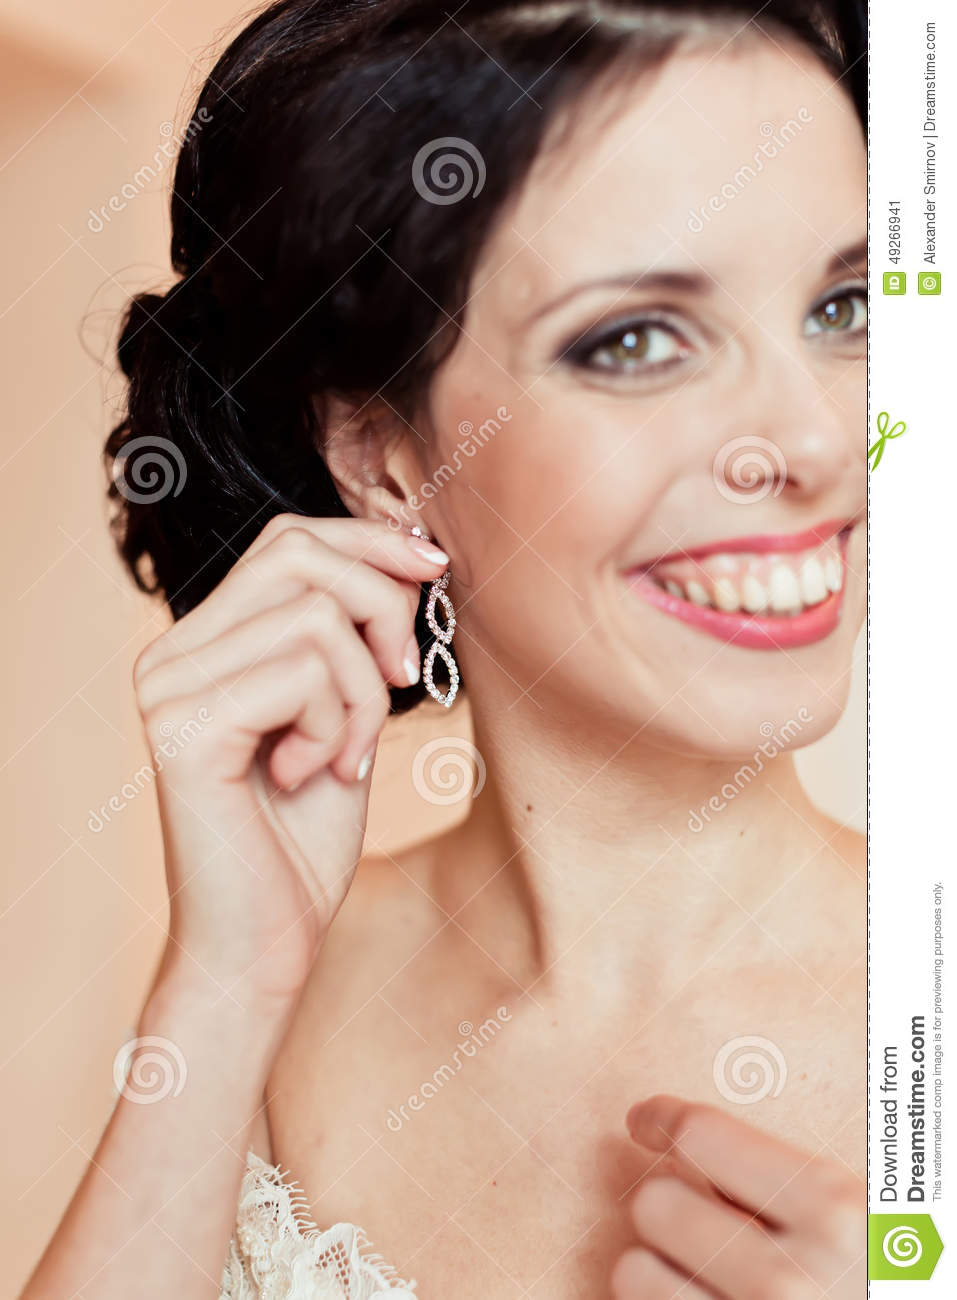 wearing earrings necklace drop an are the topic img earings wedding updo and also with be help accents pearls ll no these a have day in doing high will earring ones diamond neckline i